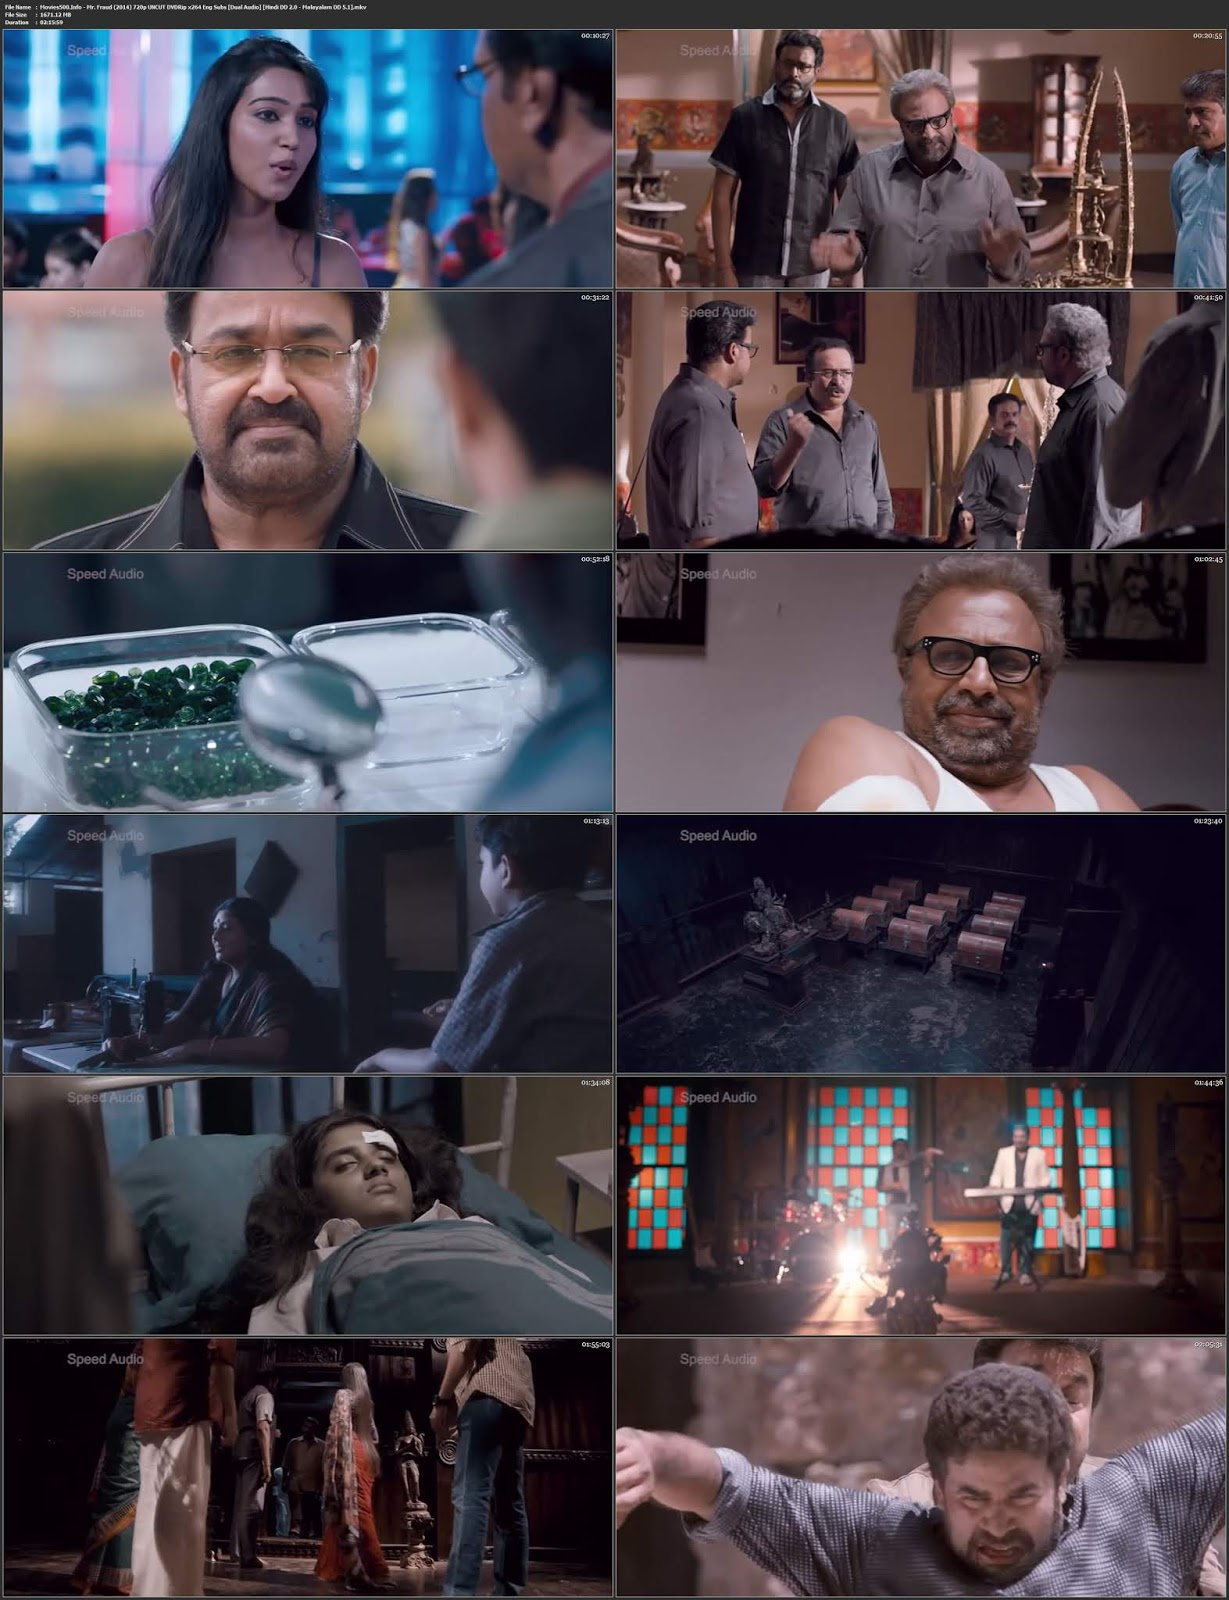 Mr. Fraud 2014 UNCUT Dual Audio Hindi Malayalam DVDRip 720p 1.6GB